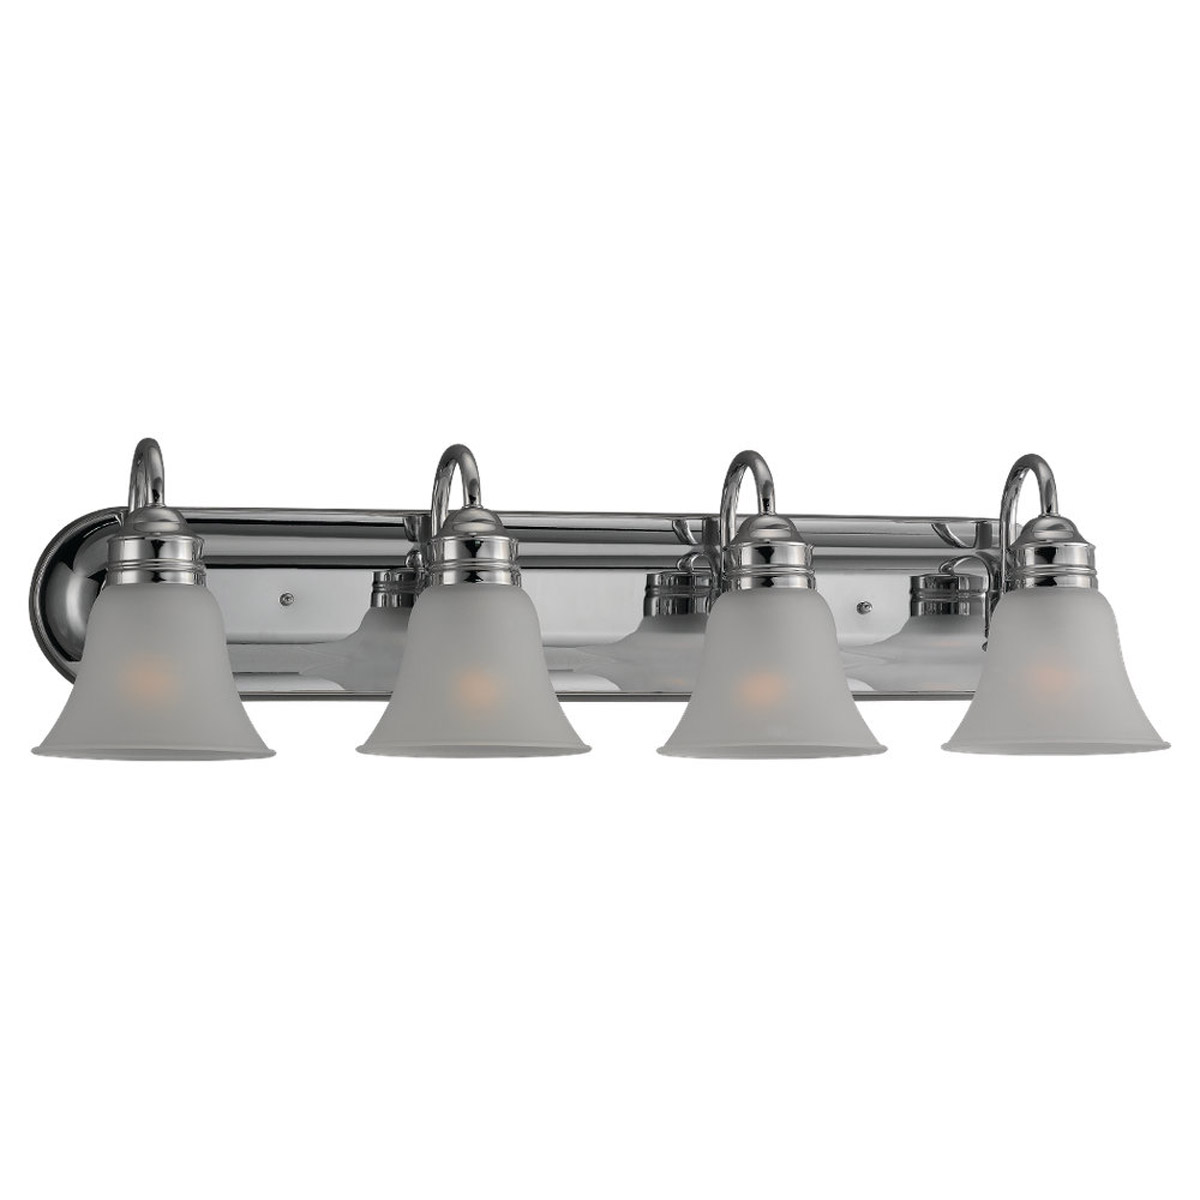 Sea Gull Lighting Gladstone 4 Light Bath Vanity in Chrome 49853BLE-05